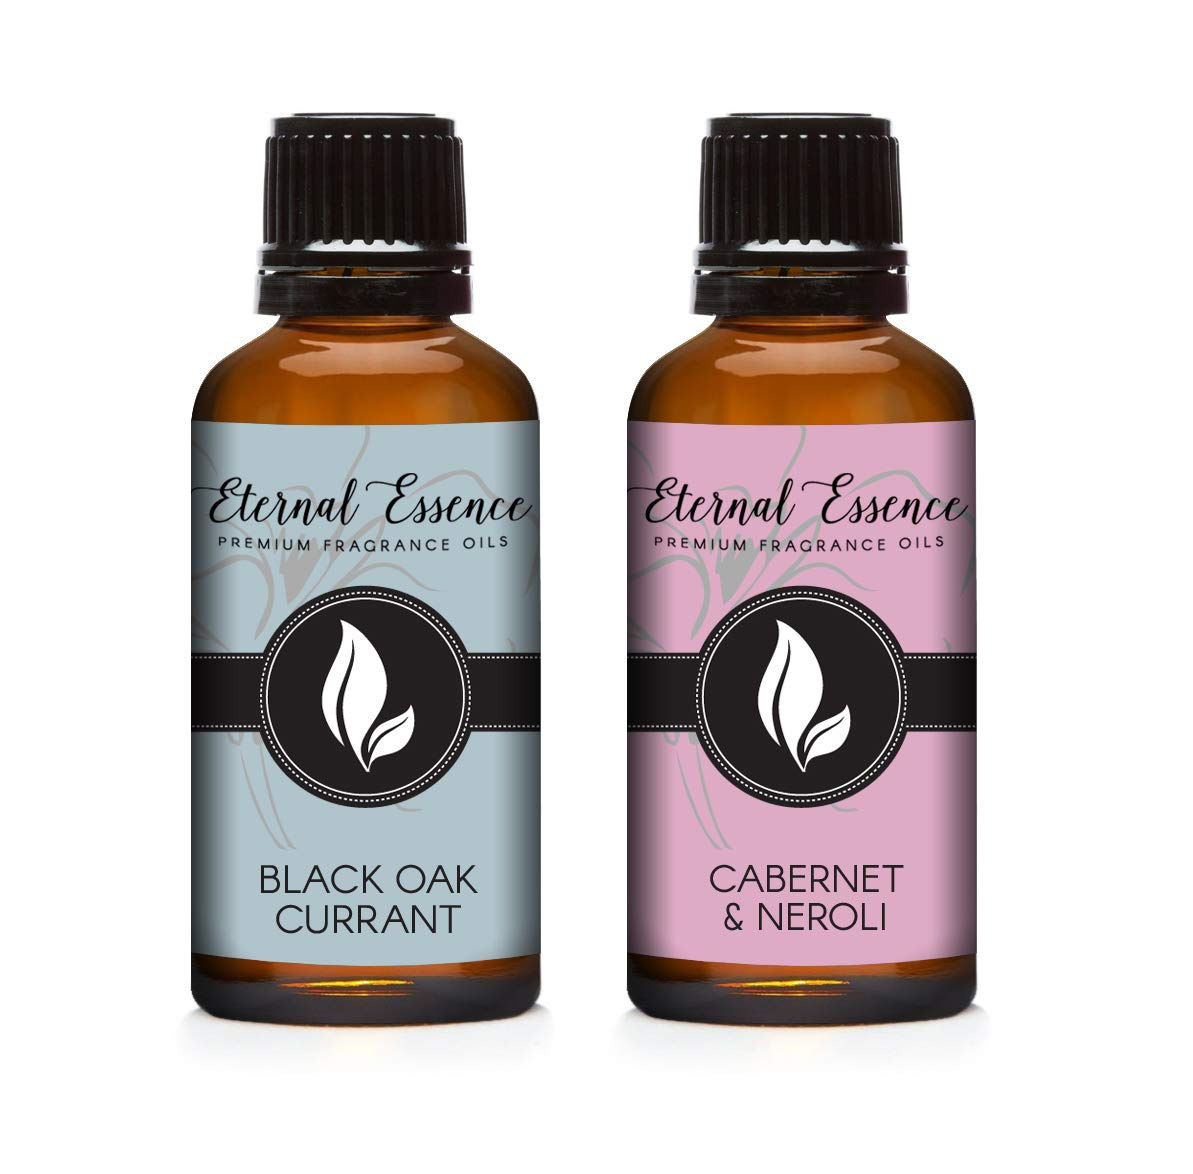 30ML - Pair (2) - Black Oak Currant & Cabernet & Neroli - Premium Fragrance Oil Pair - 30ML